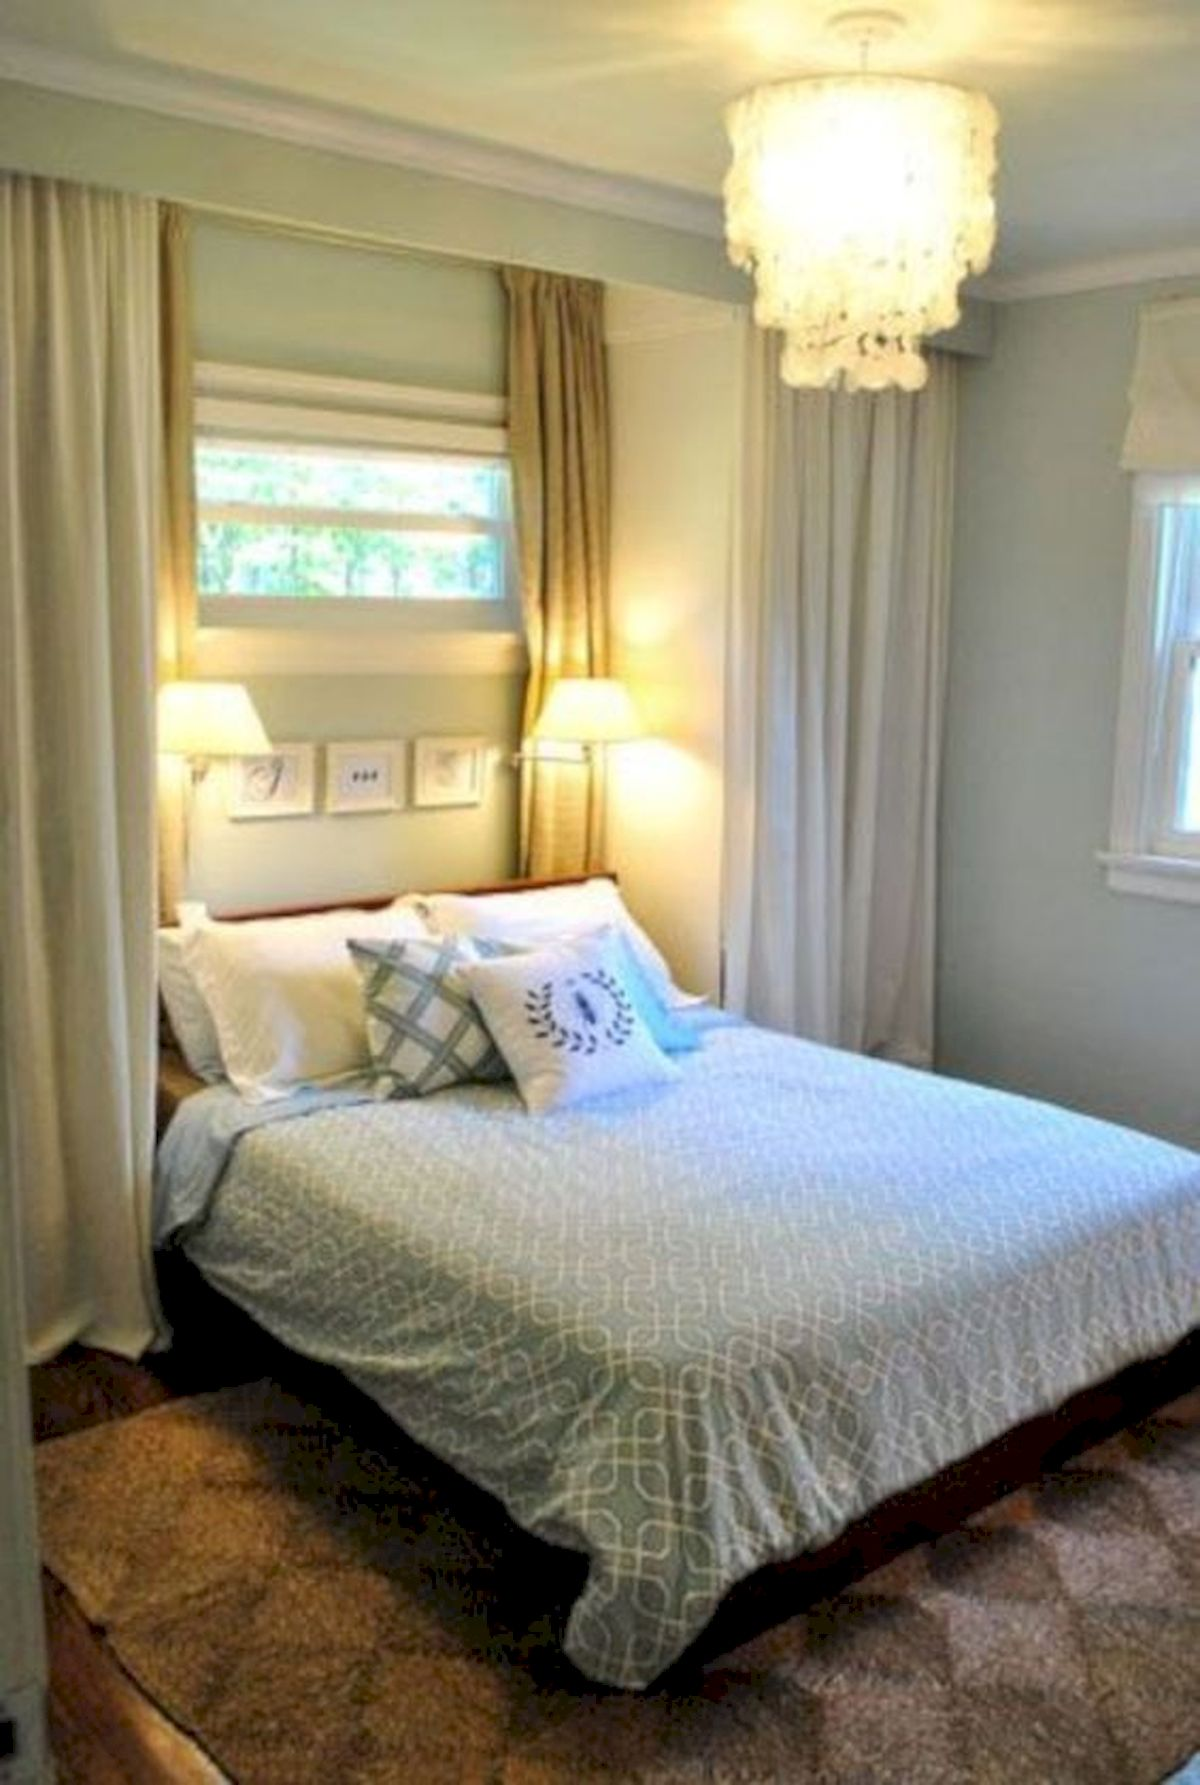 60 Brilliant Space Saving Ideas For Small Bedroom (59)